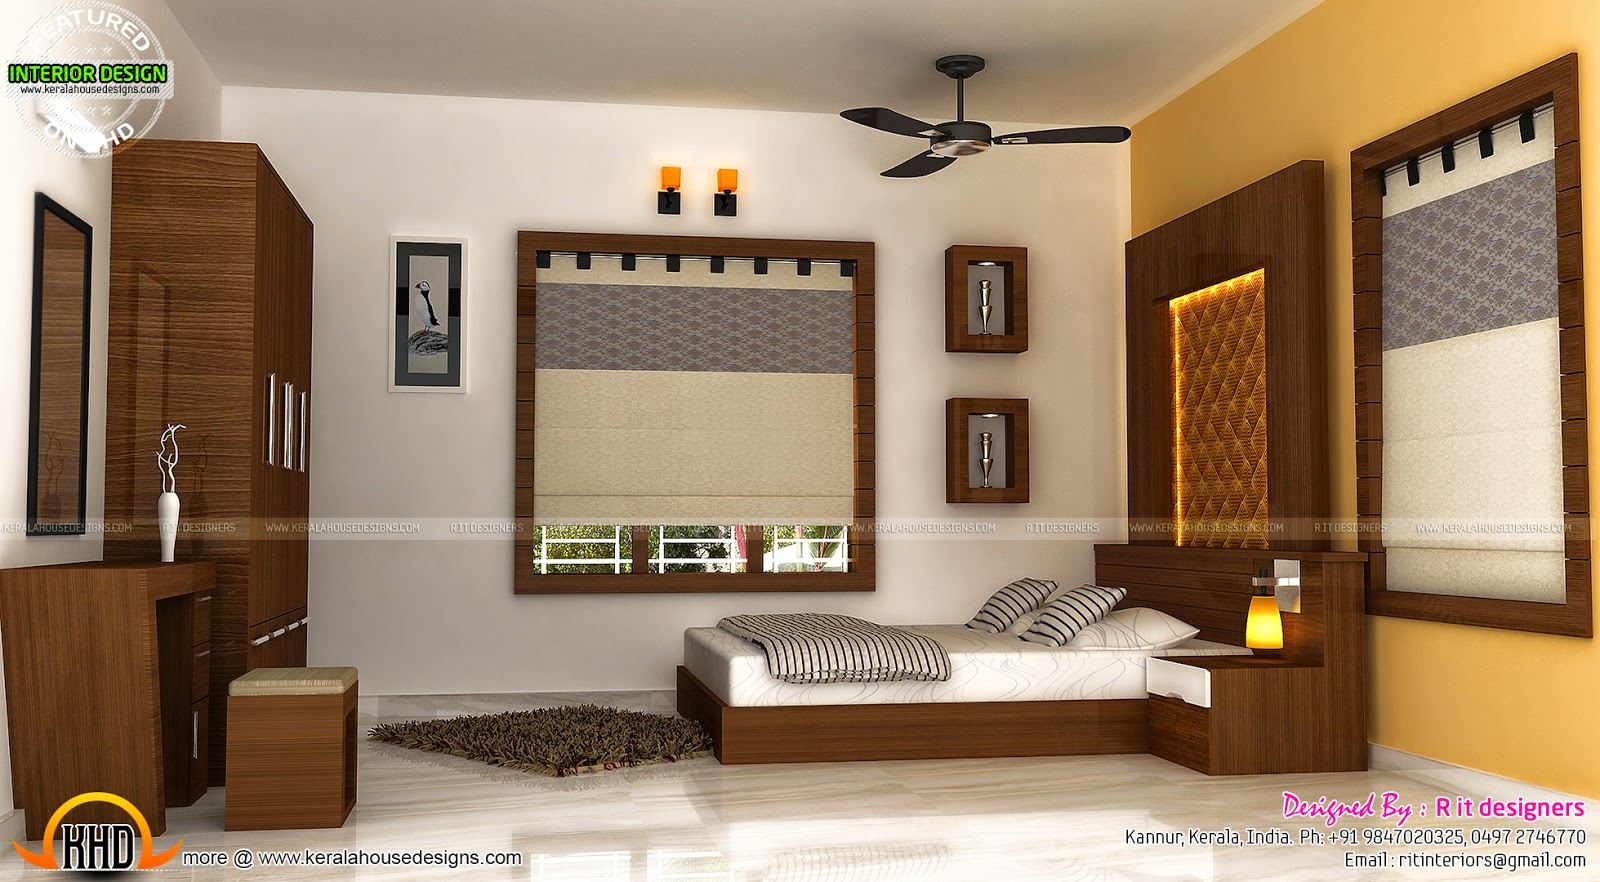 Home Interior Design Ideas Kerala: Staircase, Bedroom, Dining Interiors